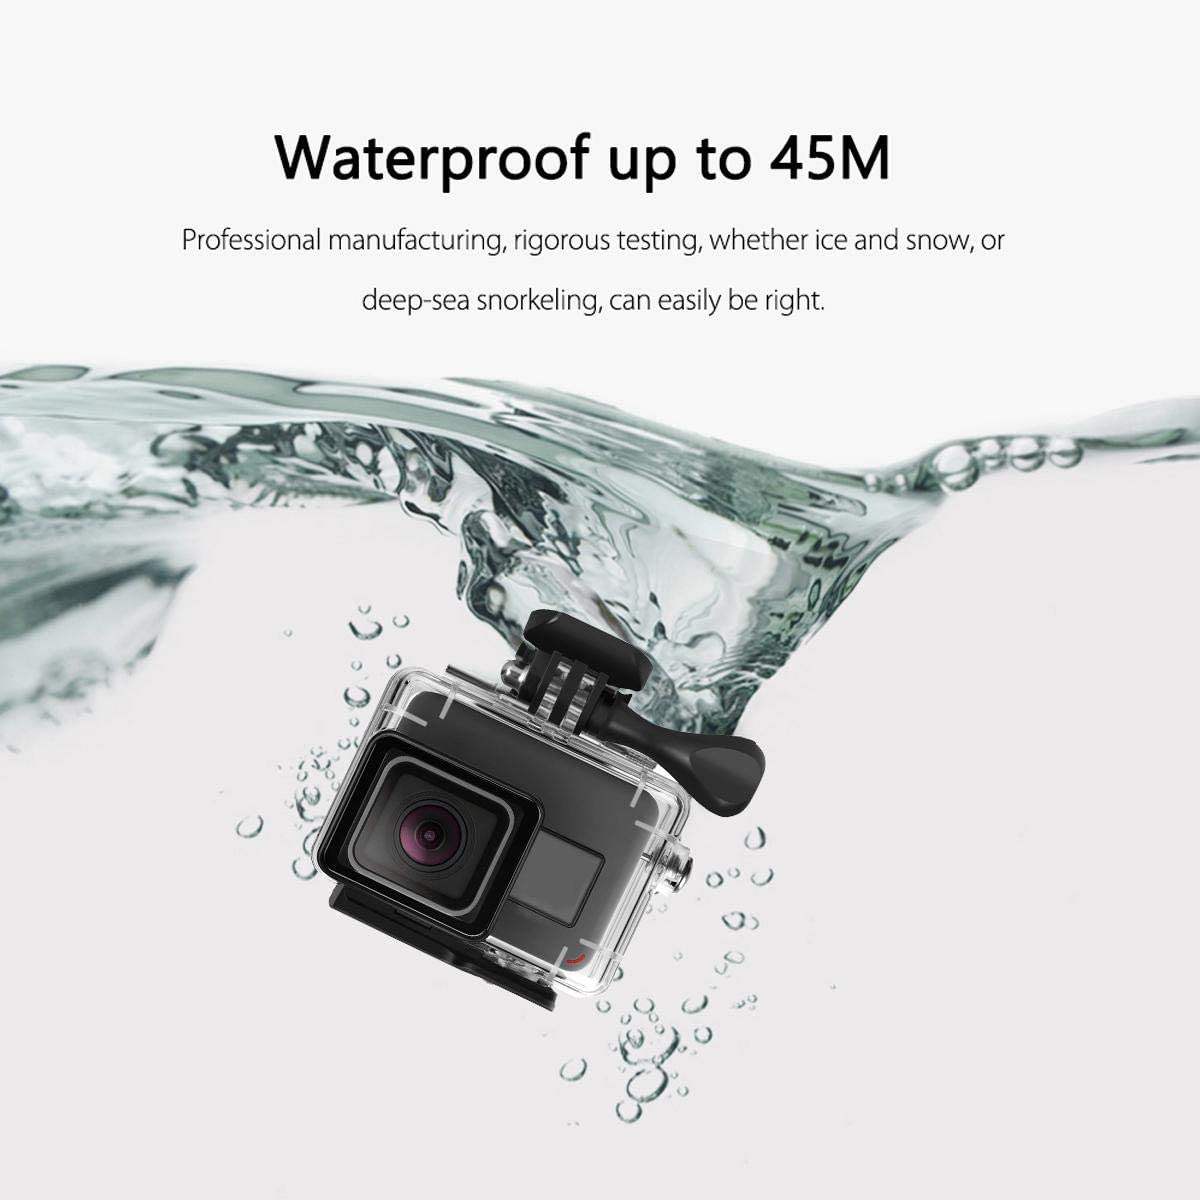 Housing Case Filter Kit Compatible with Go Pro Hero 7 Silver White,Vuffuw Waterproof Case Accessories Kit with Waterproof Case,Anti-Fog Film,Filter,Ropes,Storage Bag